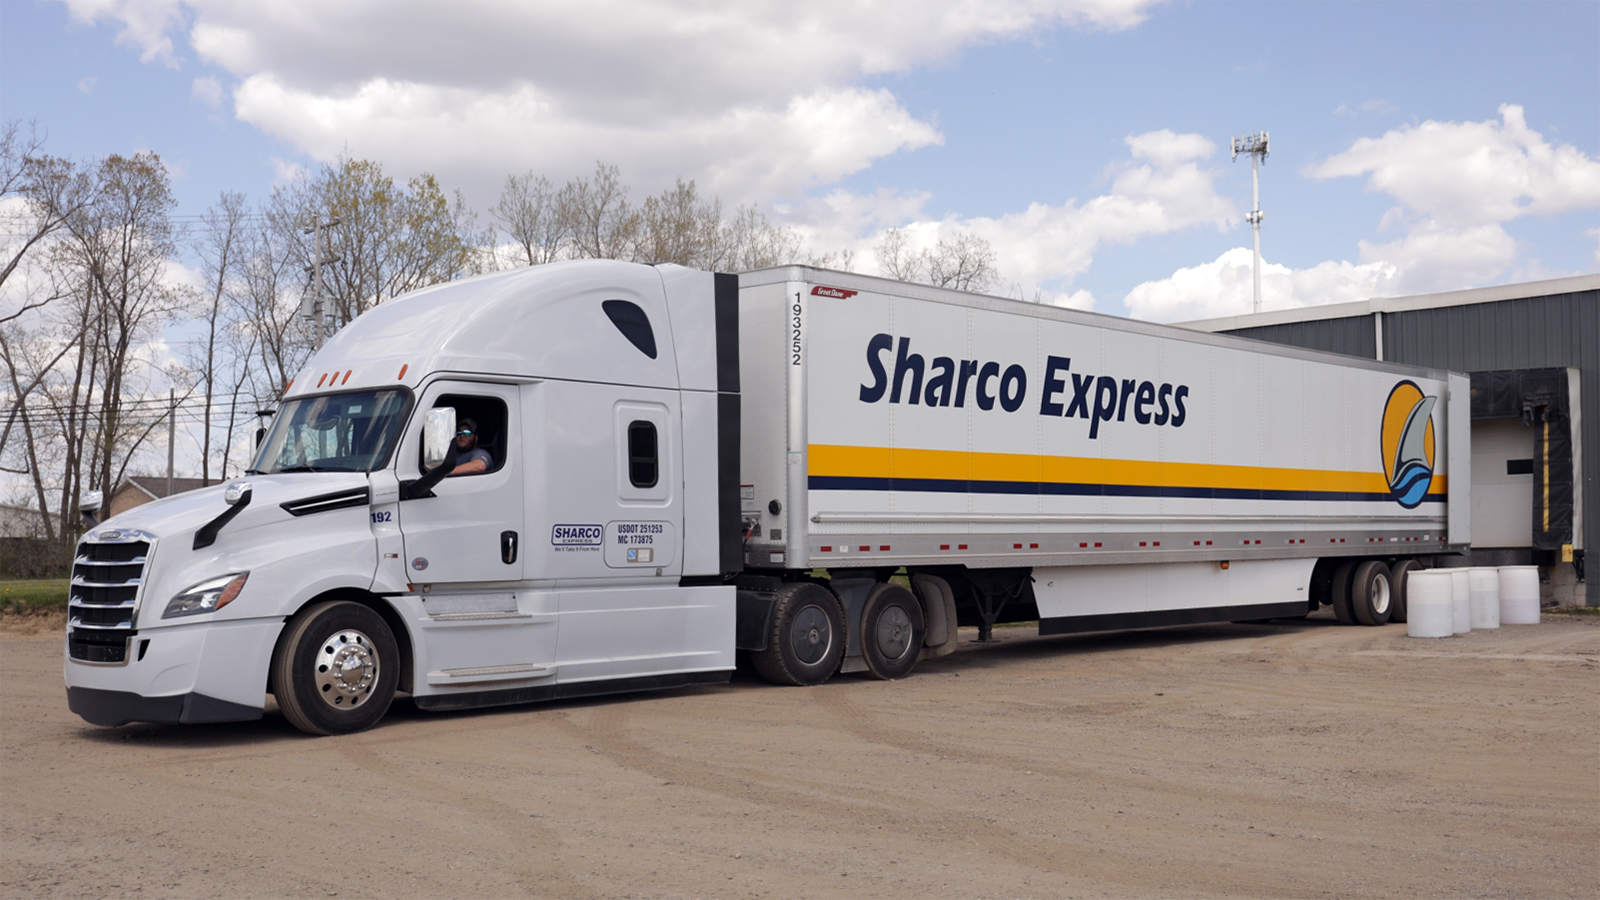 Sharco Express Slashes Paperwork Processing Time, Frees Cash Flow